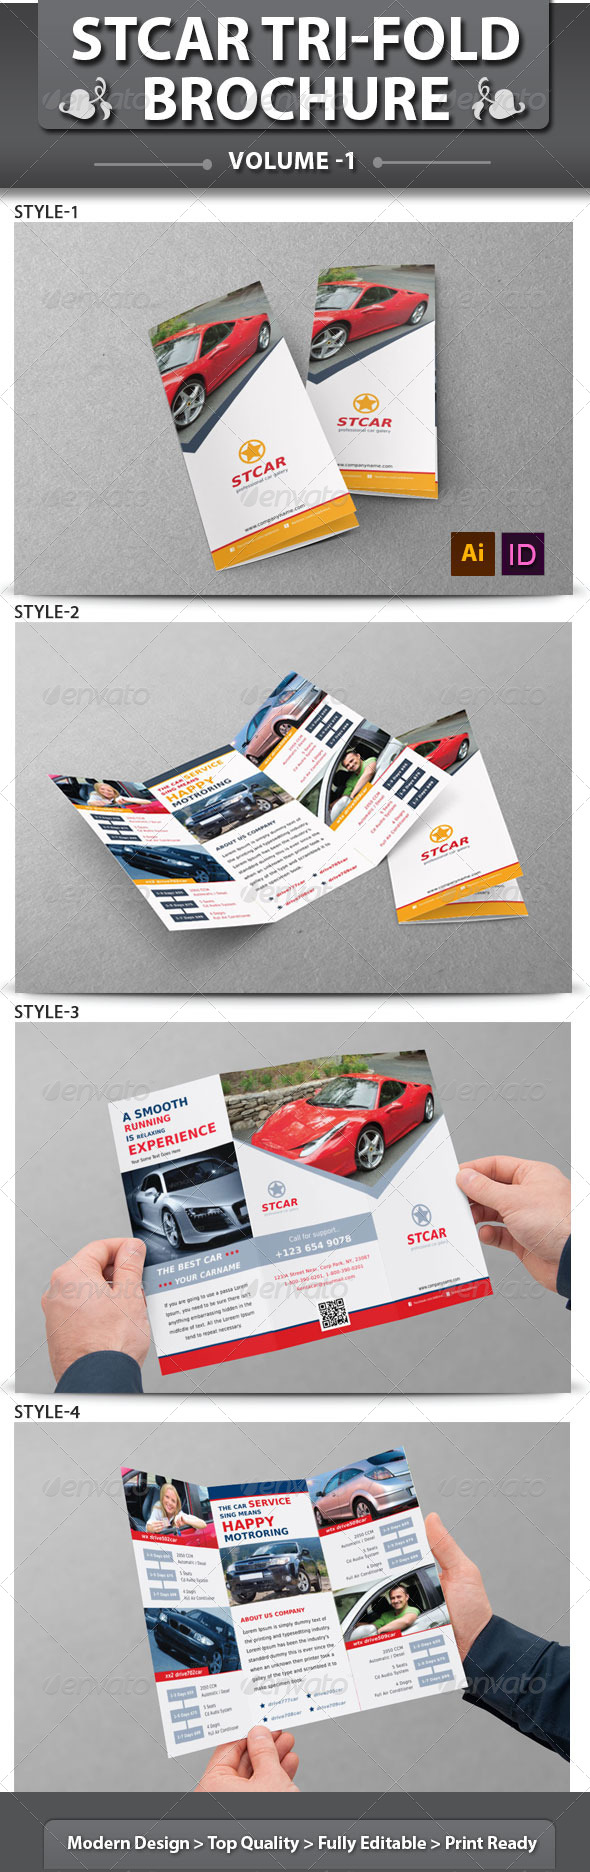 Automobile Business Tri-fold Brochure | Volume 1 - Corporate Brochures